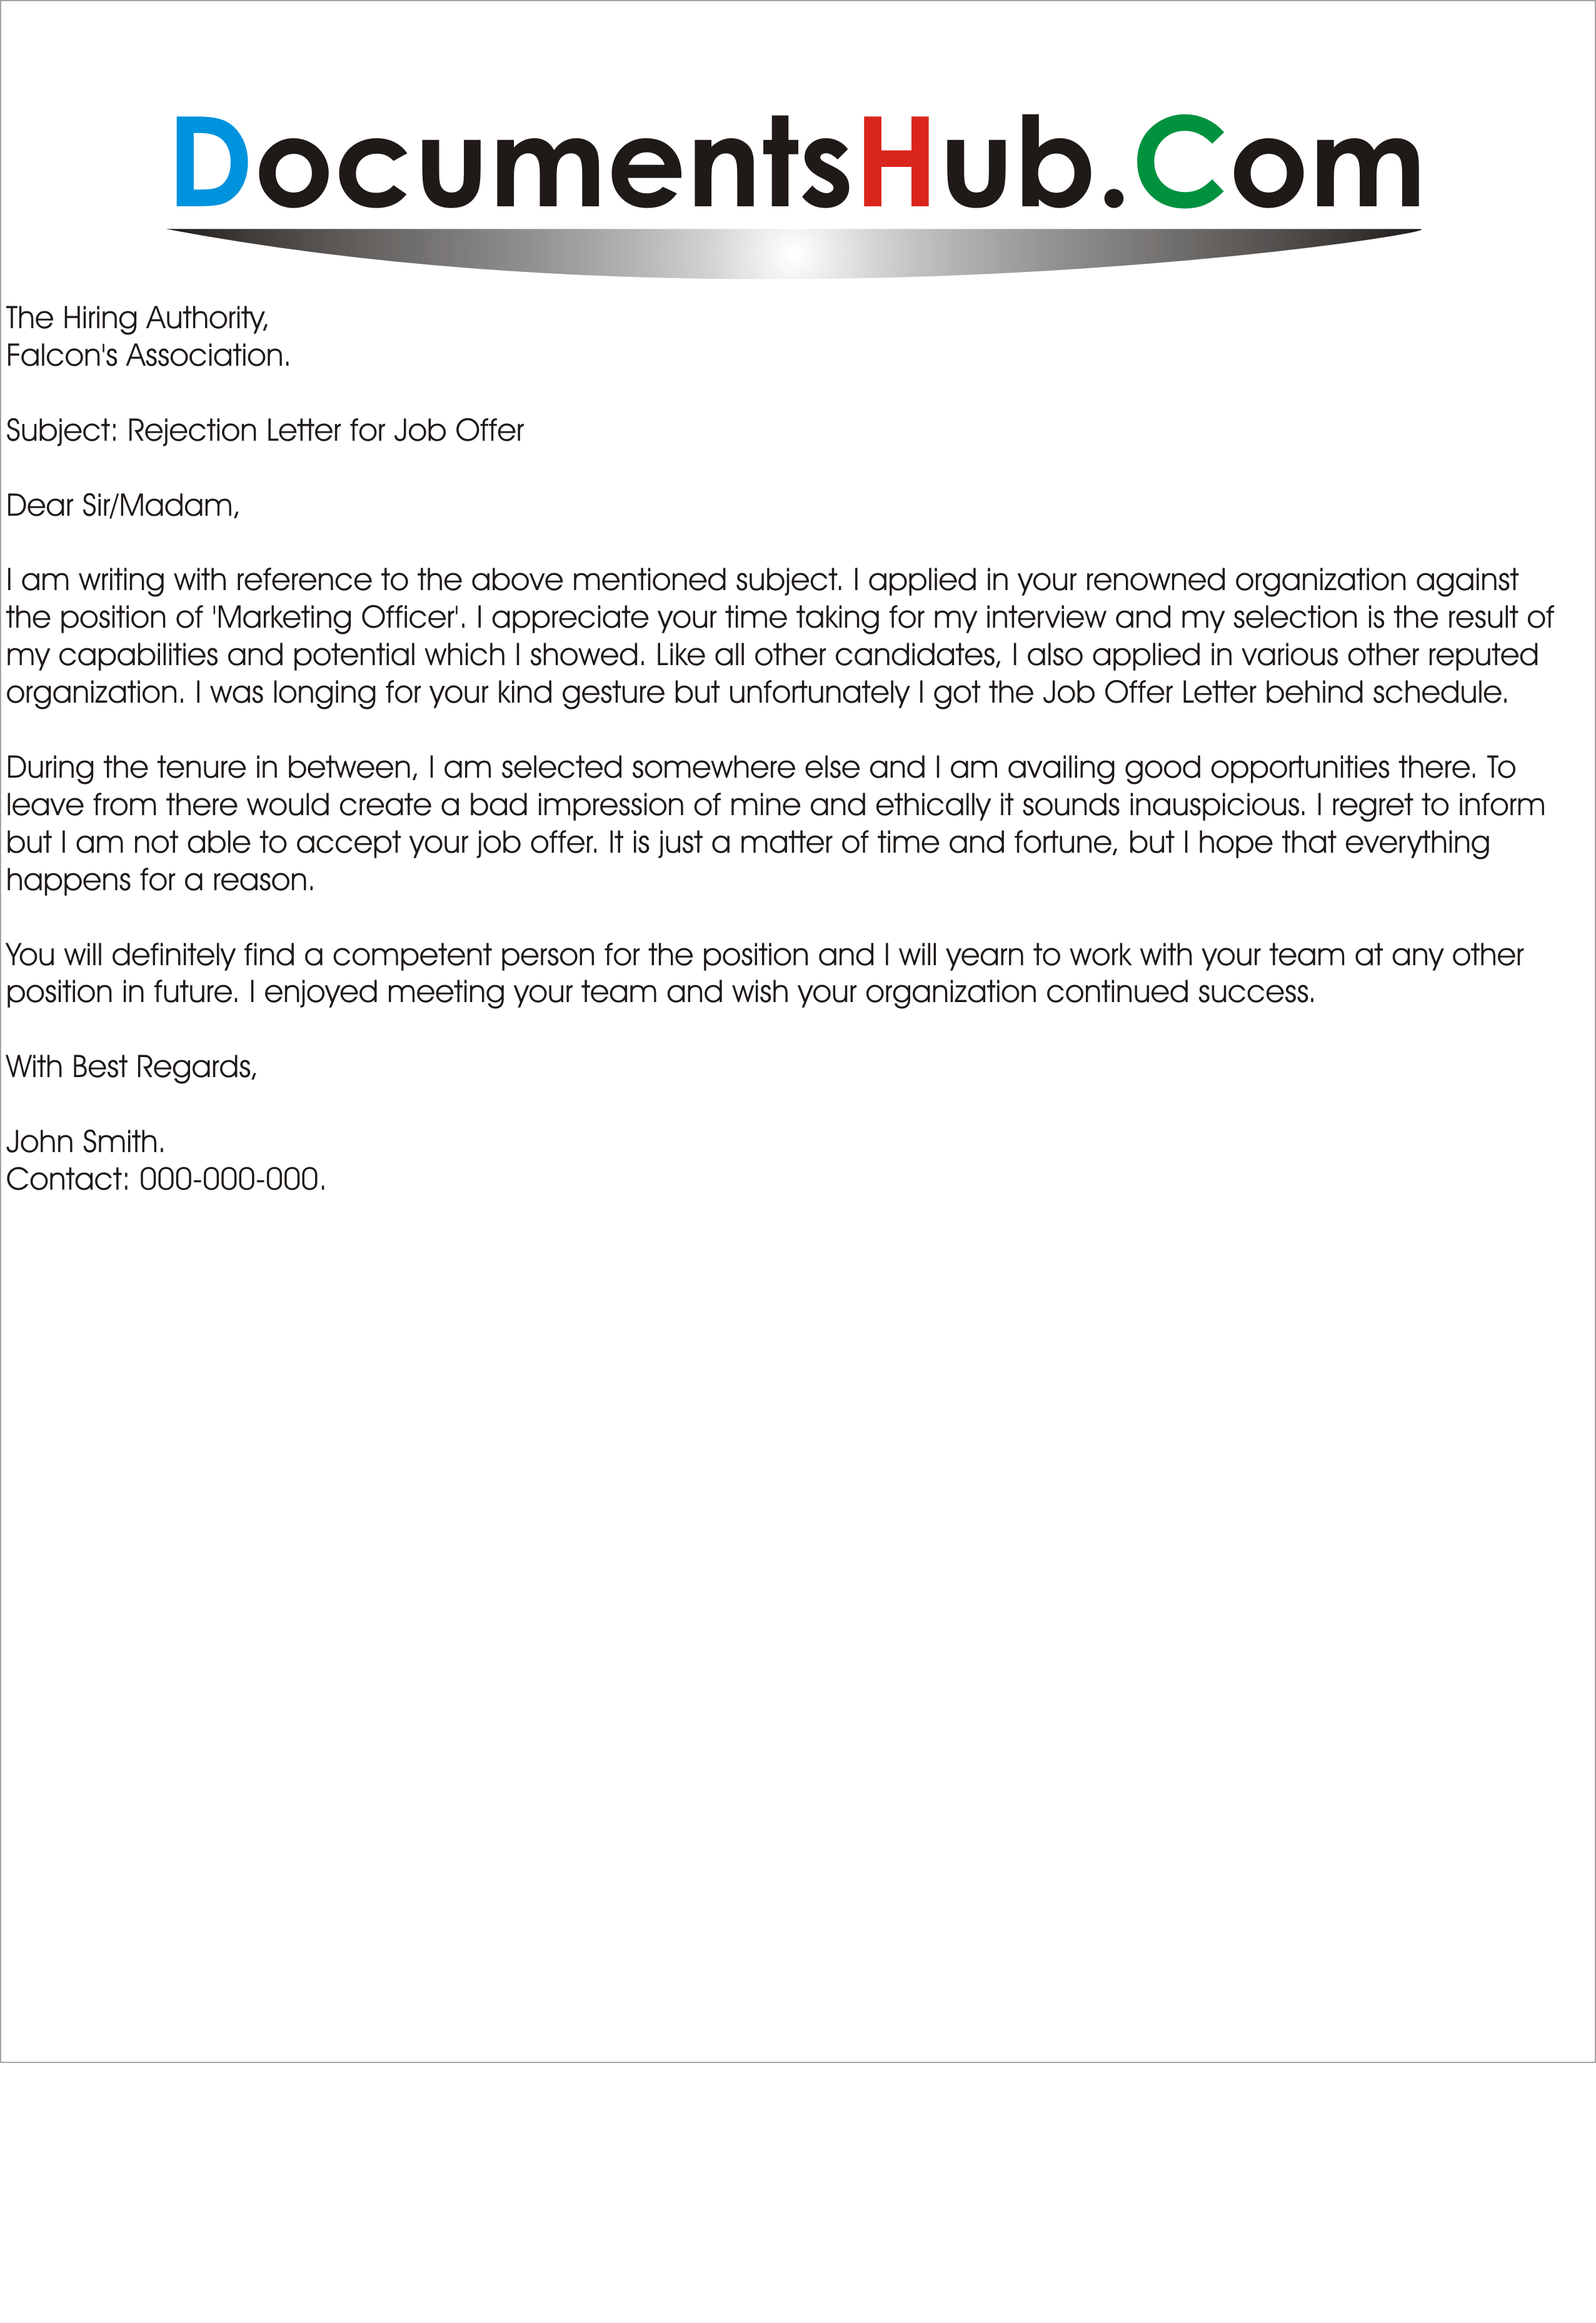 How To Handle Job Rejection Letter